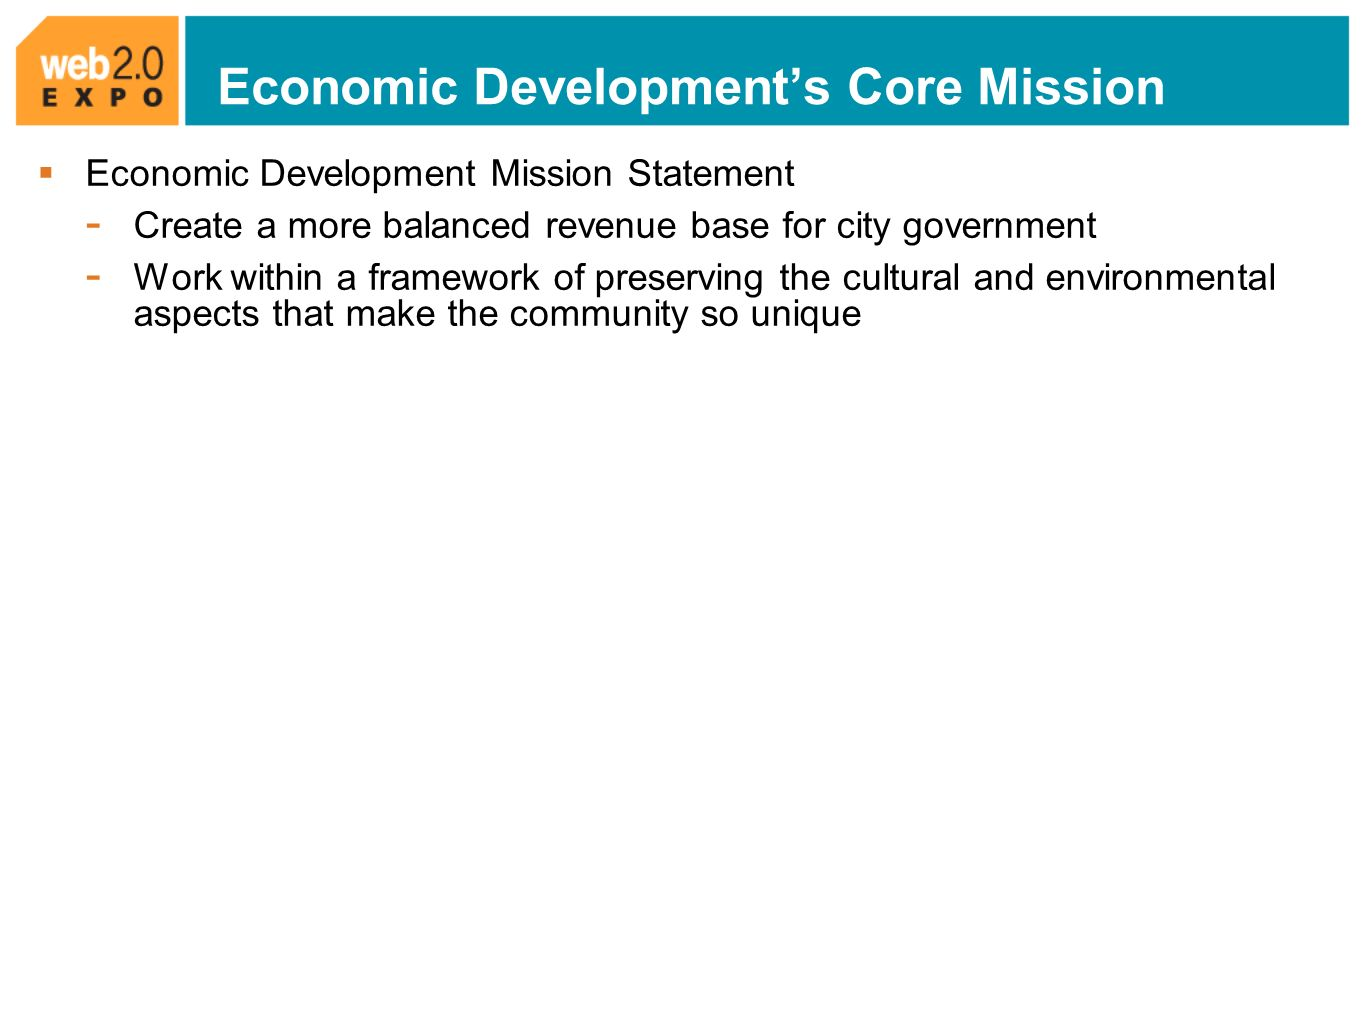 Economic Developments Core Mission Economic Development Mission Statement - Create a more balanced revenue base for city government - Work within a framework of preserving the cultural and environmental aspects that make the community so unique